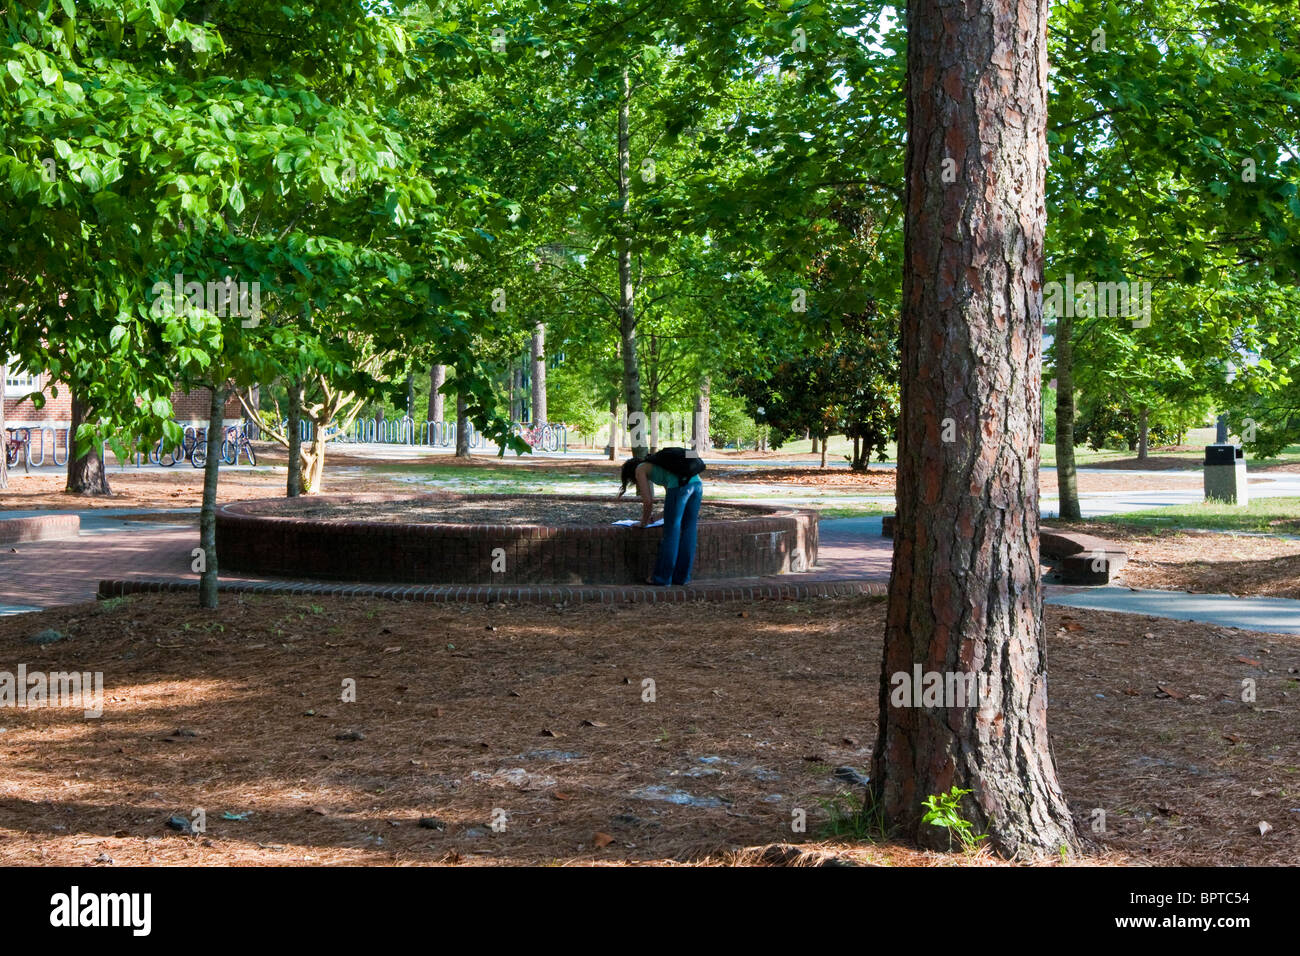 Lone student gets ready for class at the University of North Carolina, Wilmington. - Stock Image